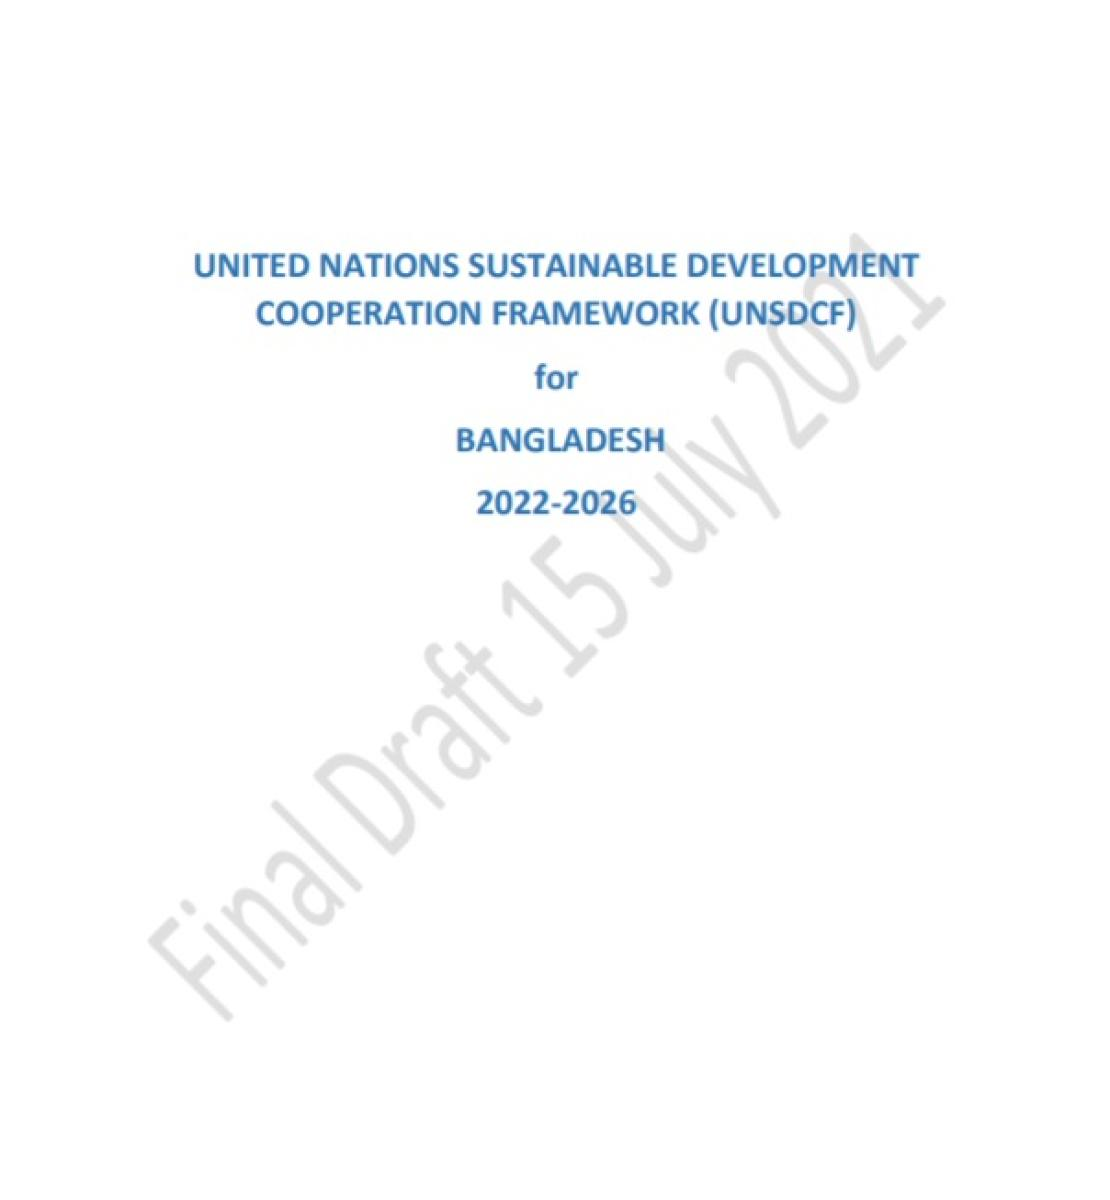 """Cover page of the UN Sustainable Development Cooperation Framework for Bangladesh 2022-2026 document, with the words """"Final Draft 15 July 2021"""" as a watermark."""